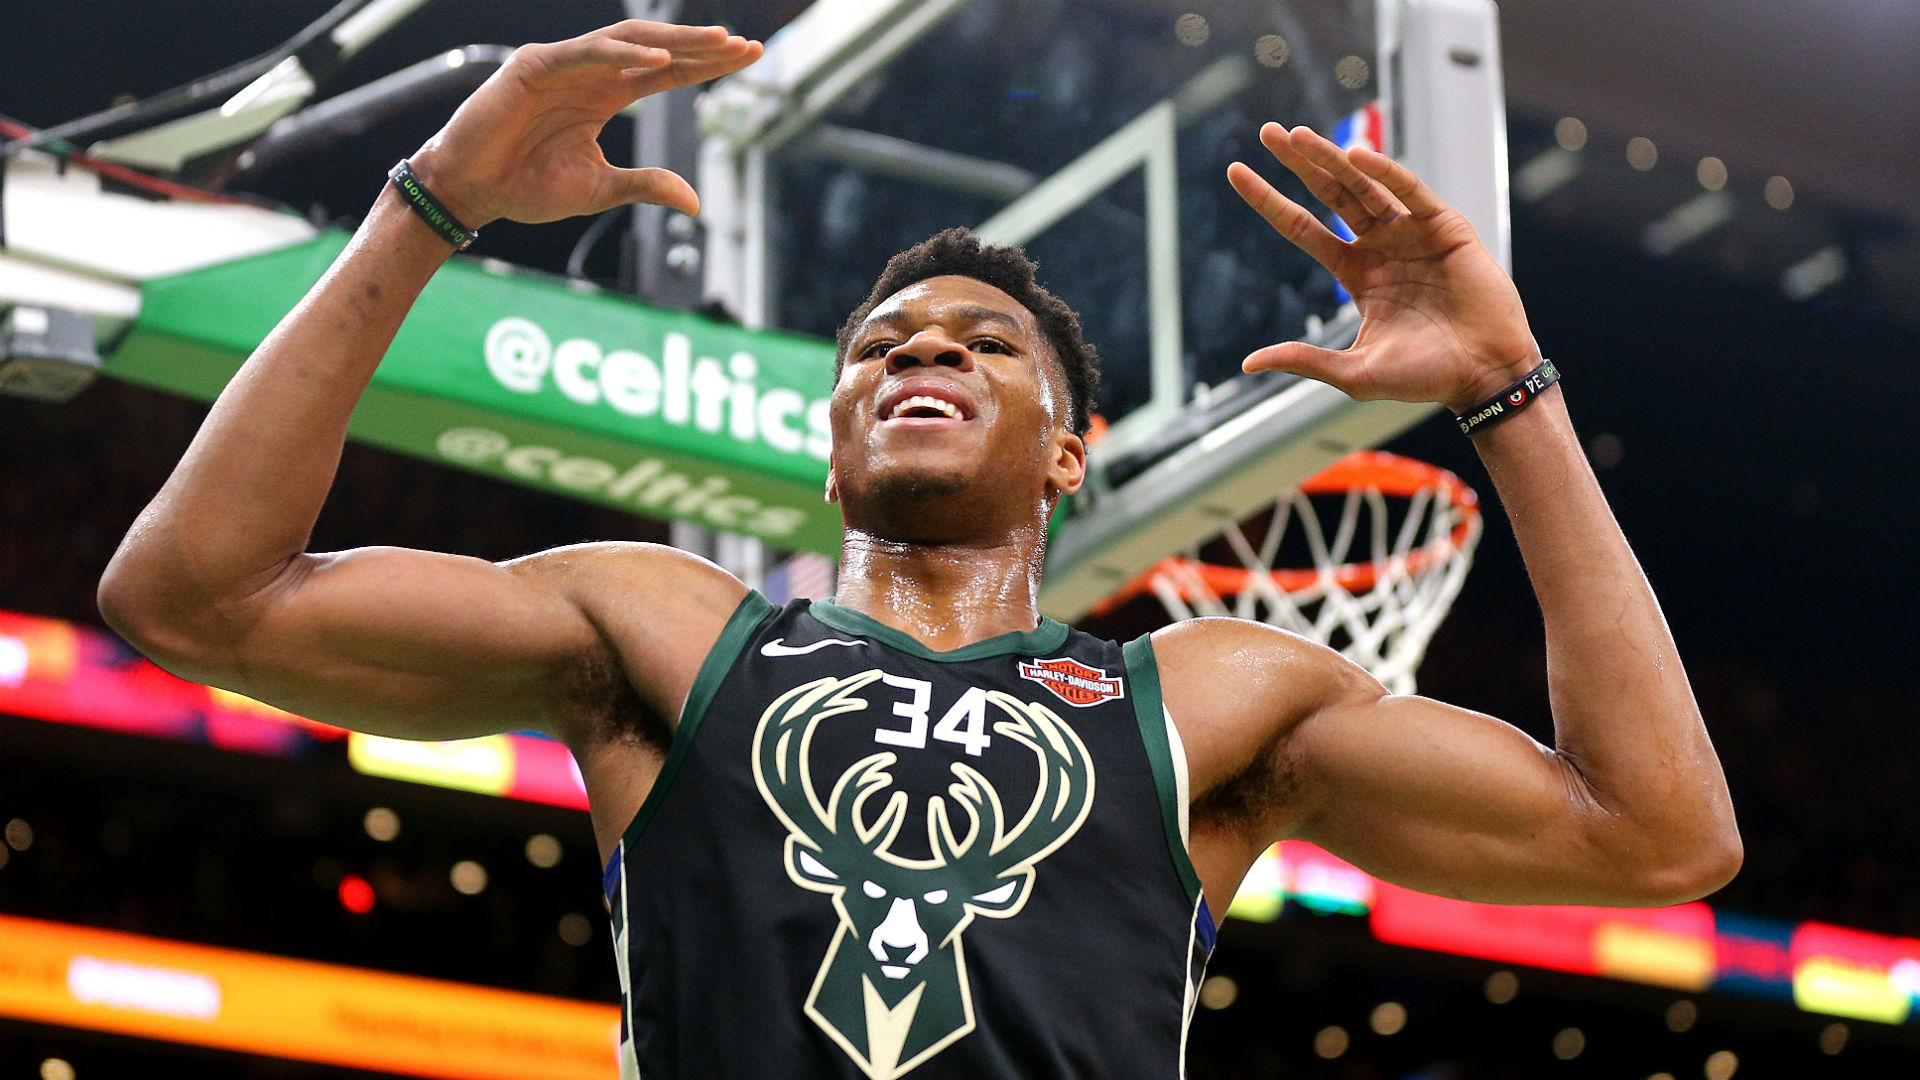 NBA wrap: Giannis Antetokounmpo, Bucks nip Celtics to extend lead in Eastern Conference